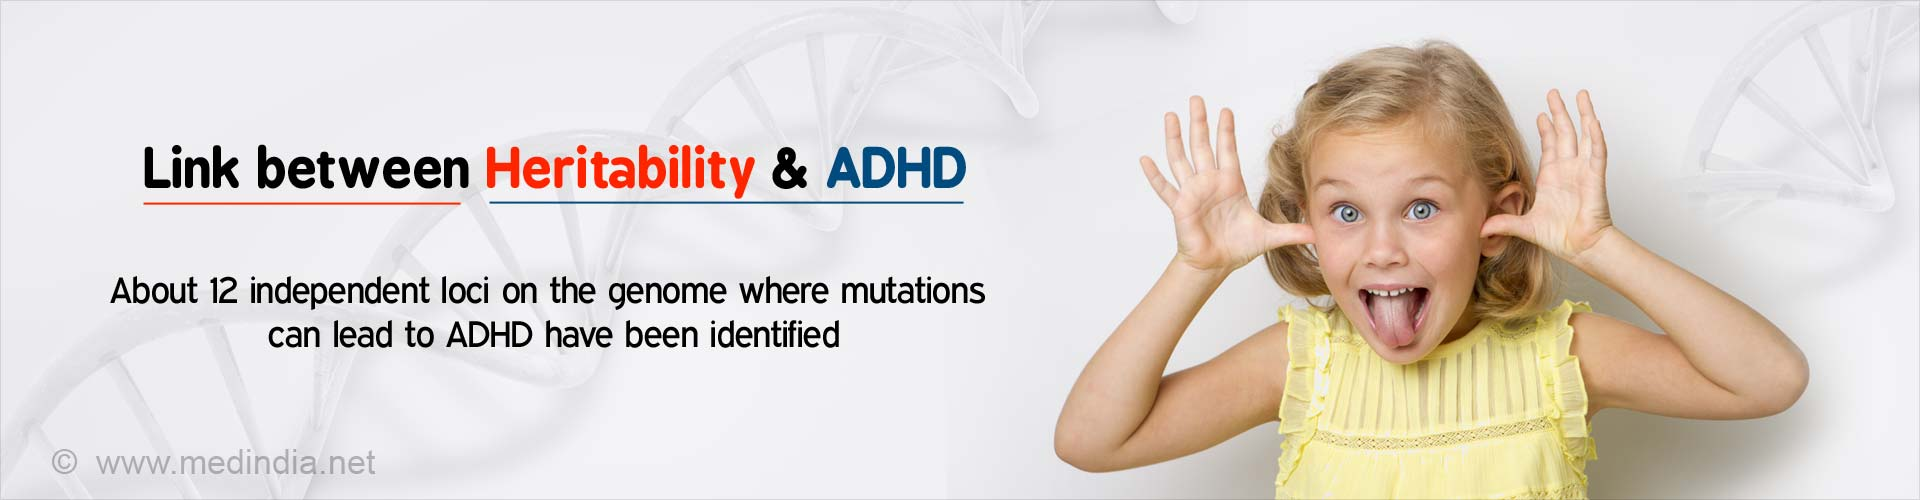 Genetic Risk Factors for ADHD Identified